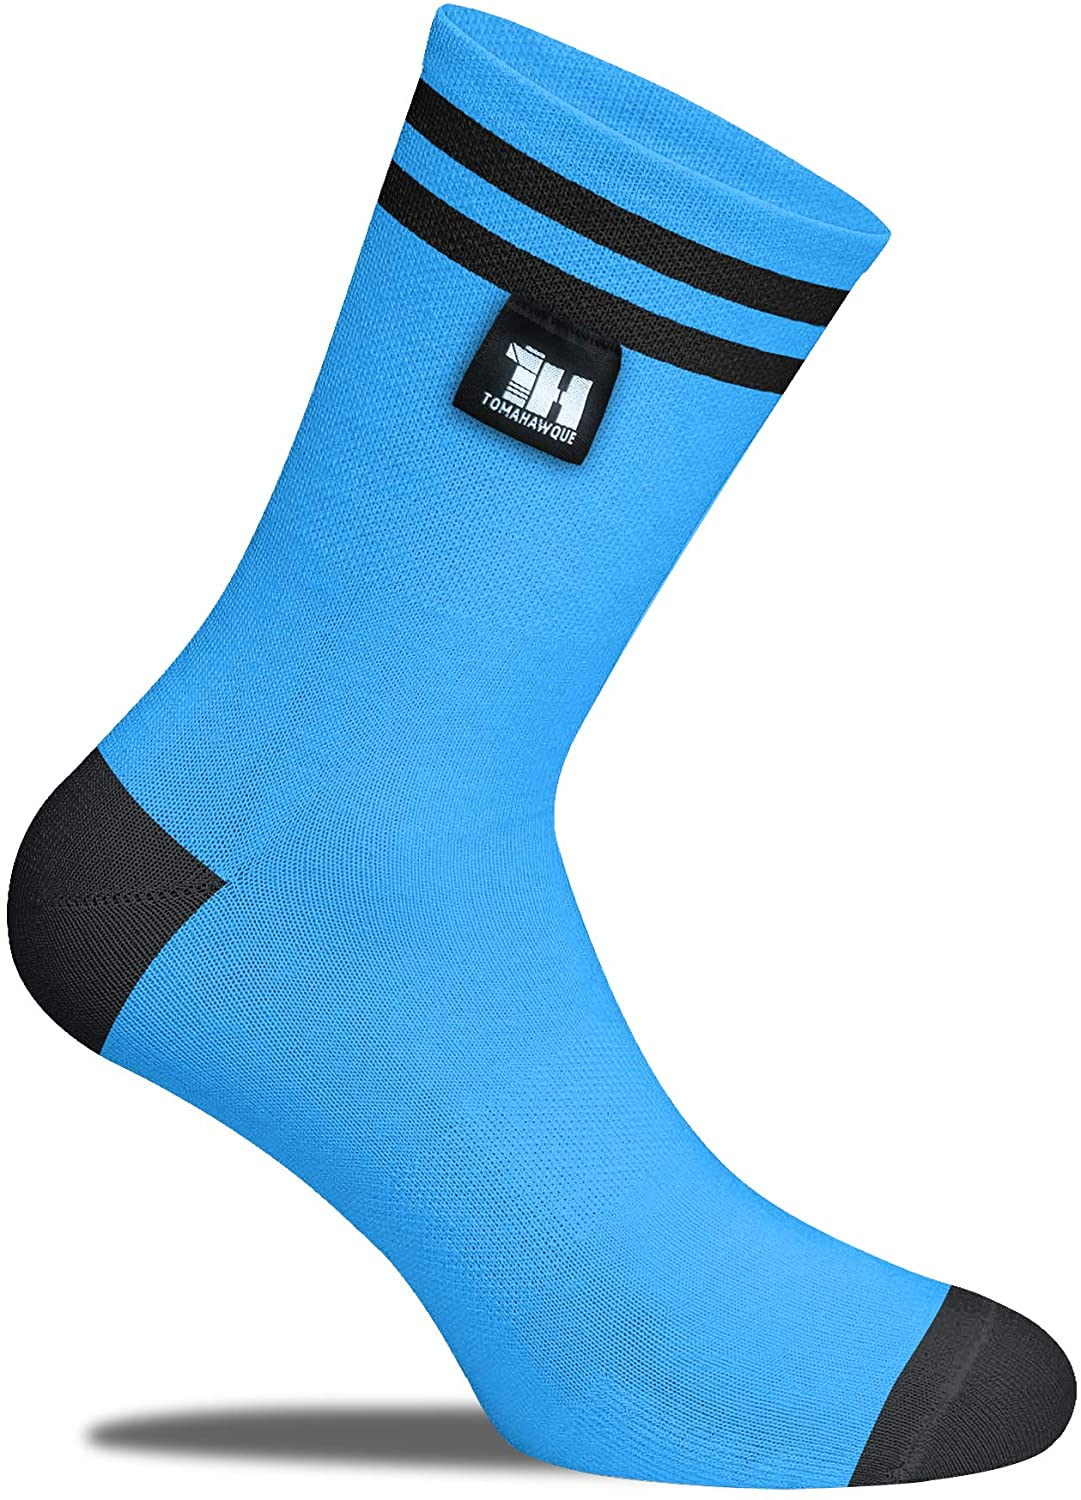 Tomahawque 100% Waterproof, Sweatproof, and Breathable Crew Socks   Perfect for Hiking, Trekking, Performance & Outdoor